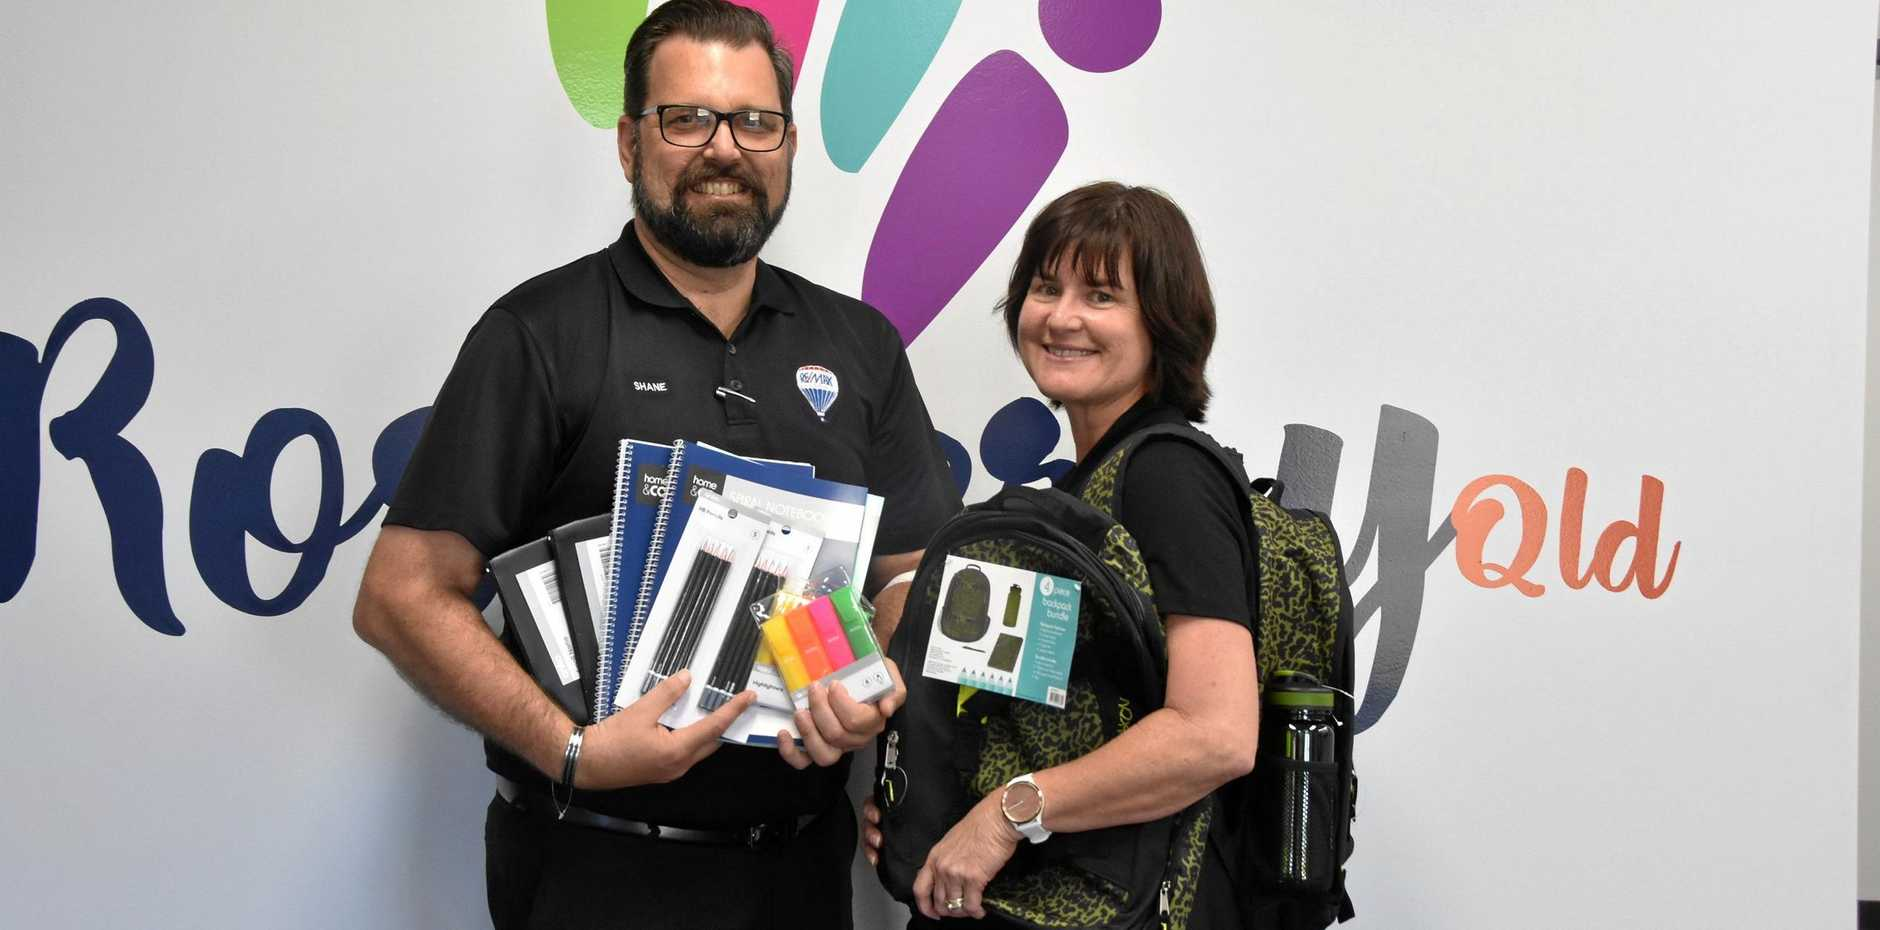 SCHOOL SUPPLIES: Remax Gold principal Shane McLeod and Roseberry Qld business support officer Leanne Donovan have kicked off the 2019 Back To School Supply Drive.